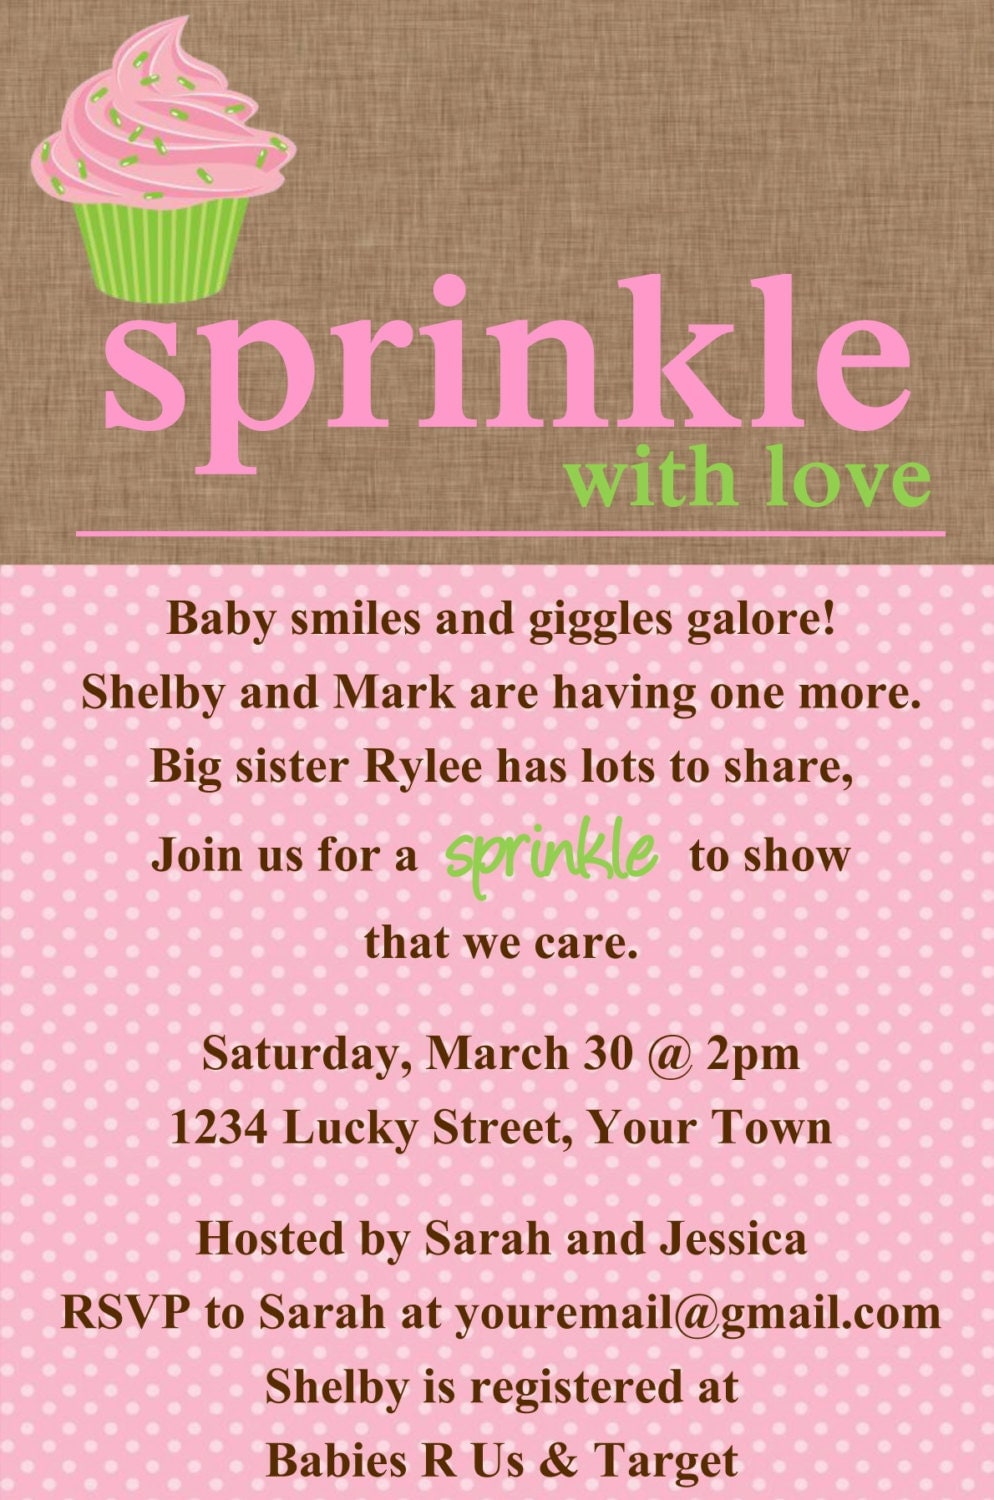 Sprinkle baby shower Cupcake Invitation Template 4x6